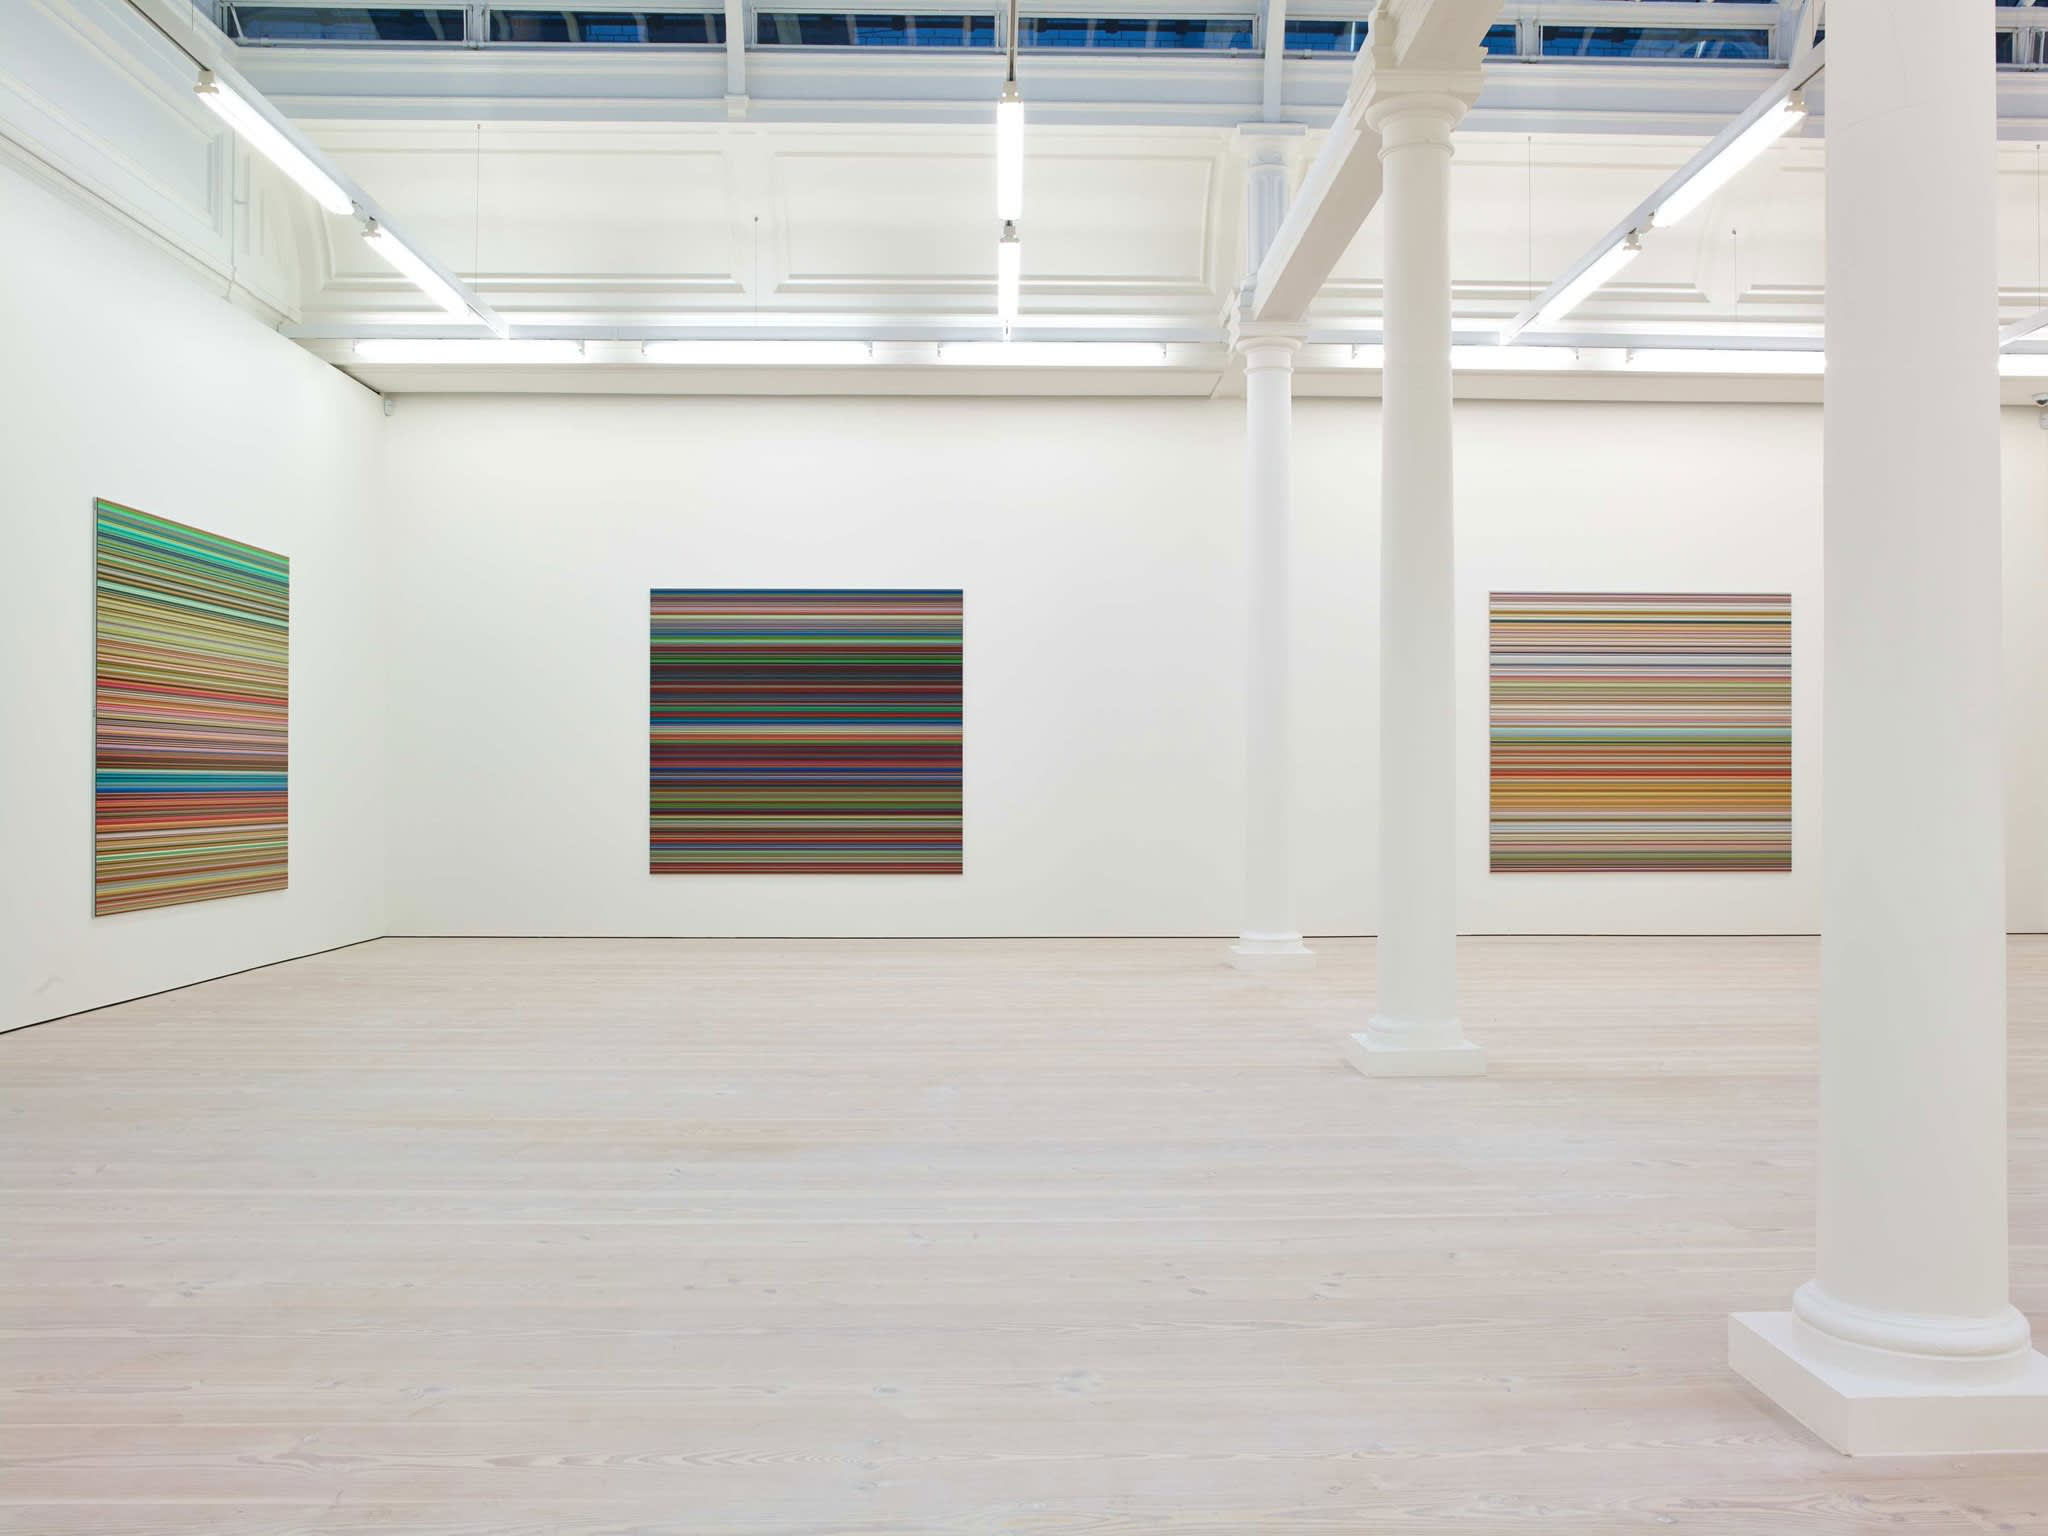 In a large white space with columns and skylights, three paintings hang, all square and about 6 by 6 feet. They are all made up of hundreds of perfect horizontal strips of various colors.